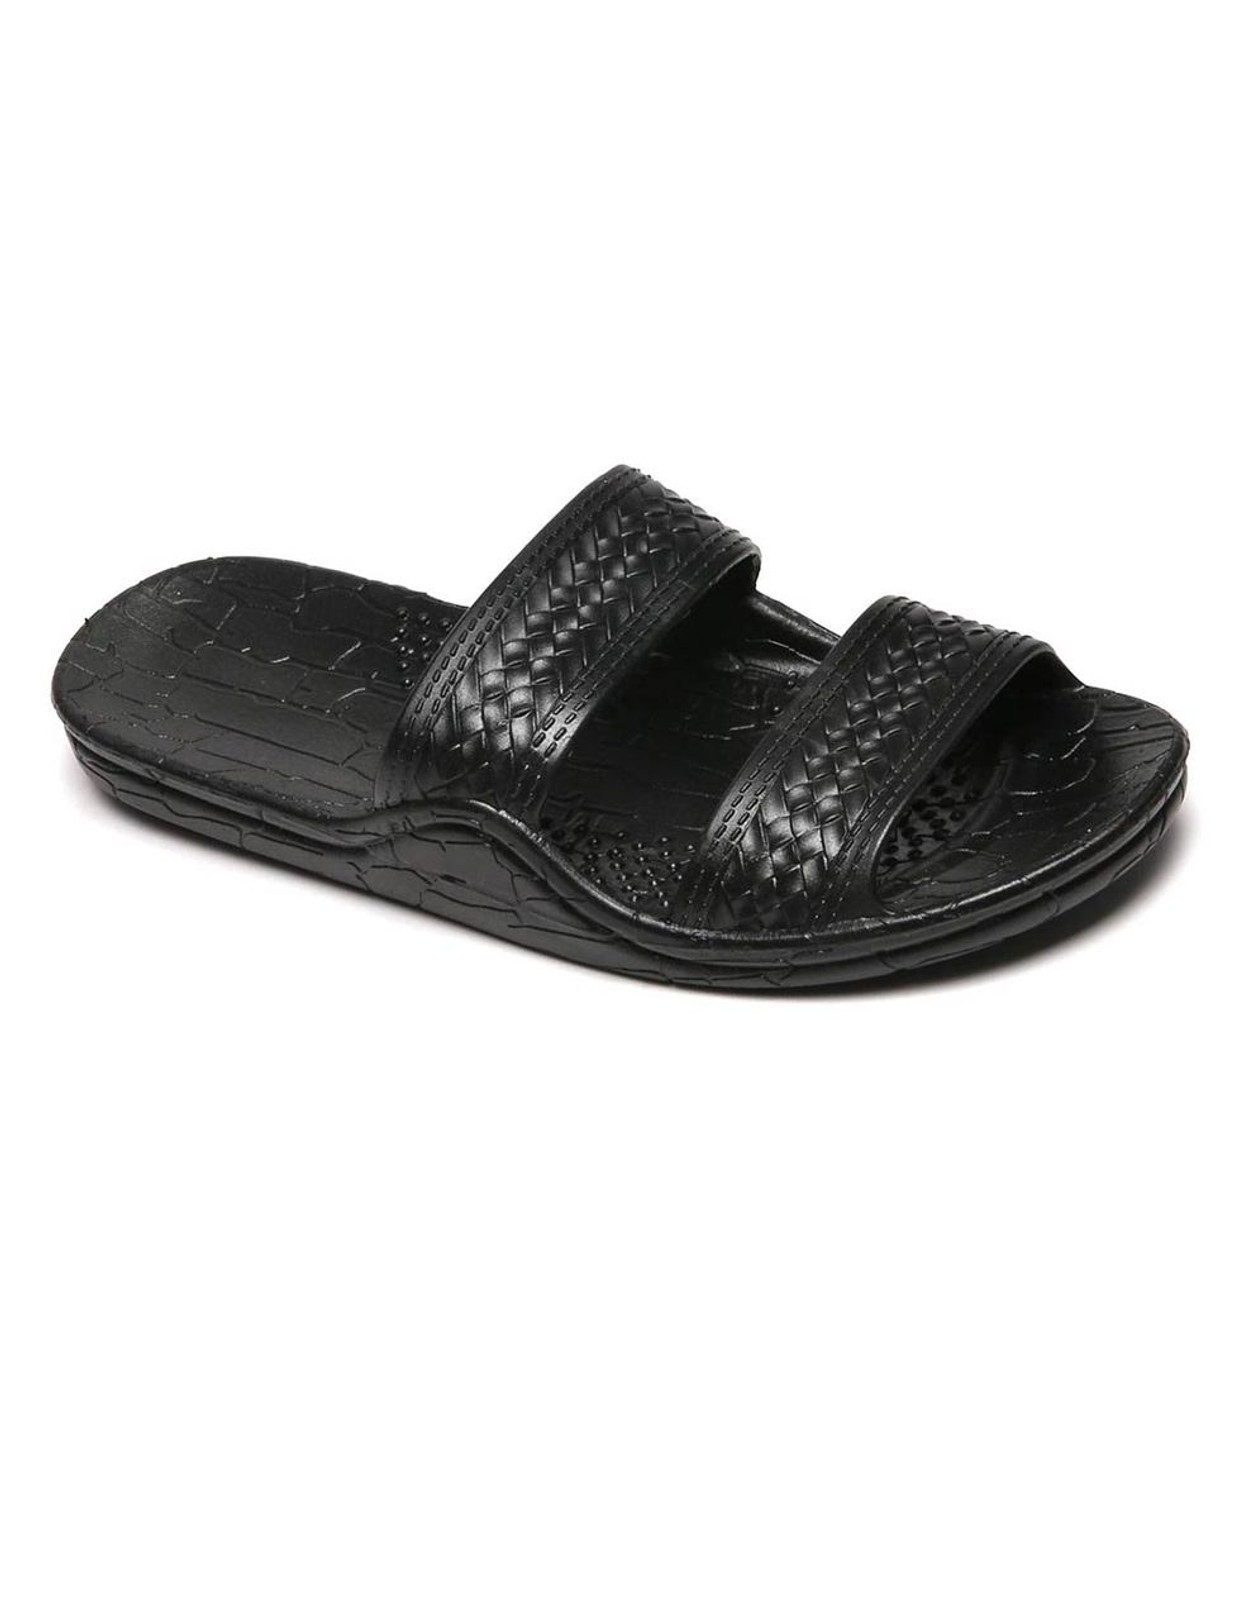 2ad450b509f1 Jesus Sandals - Wide Comfort Fit Black Classic Jandals Unisex - Men and  Women Sizes Wider